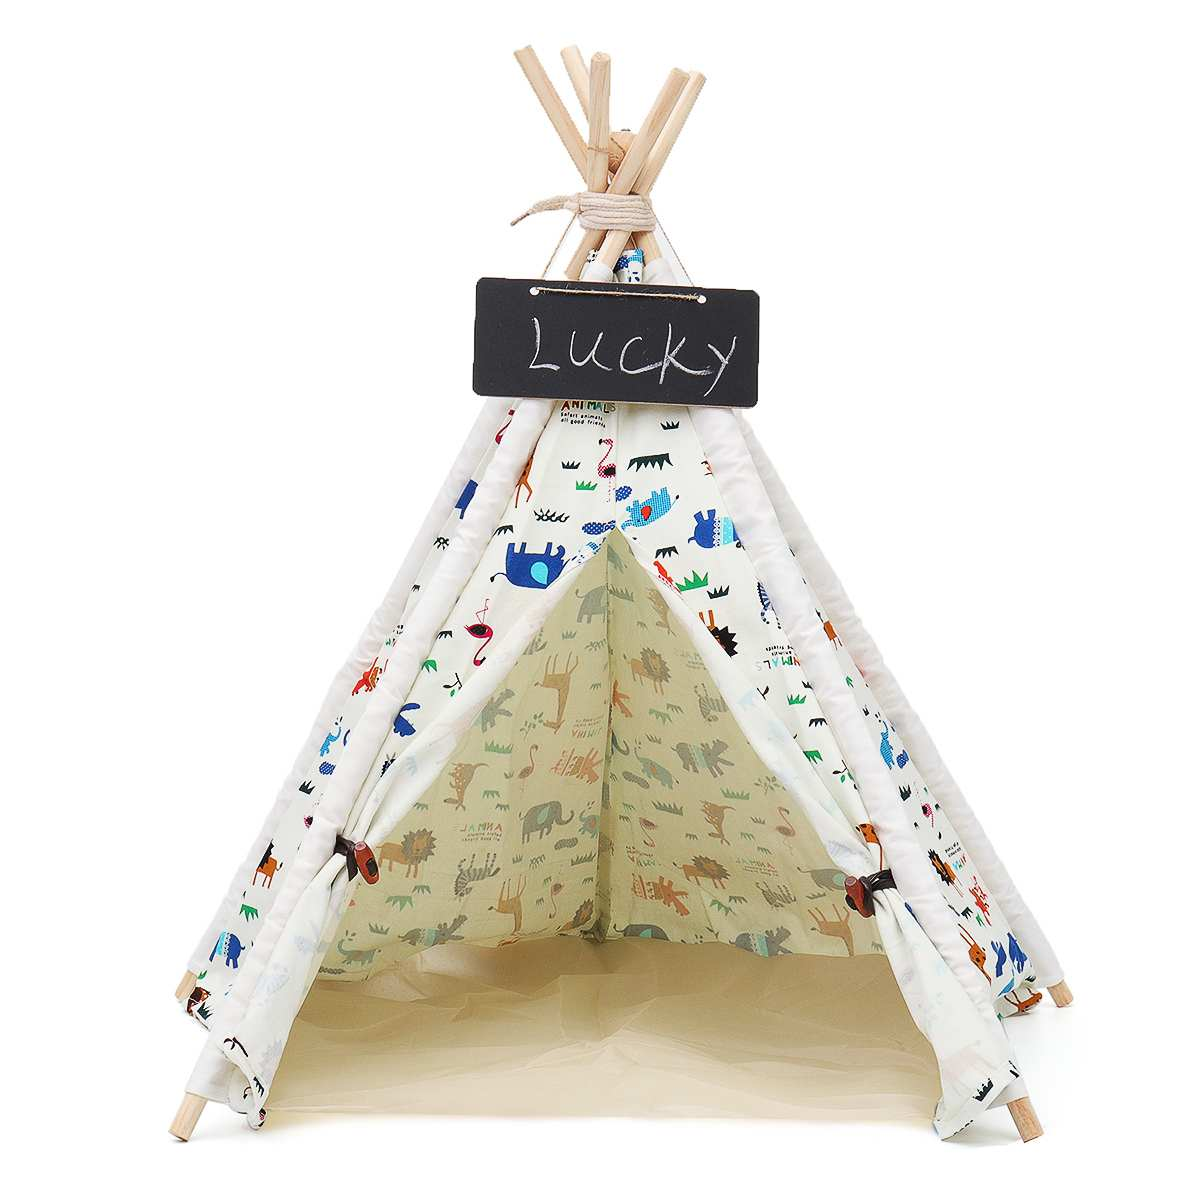 Play-Tent Teepee House Wigwam Room Children's Tent Game-House Tipi Triangle KidsTent Teepee Canvas Sleeping Dome